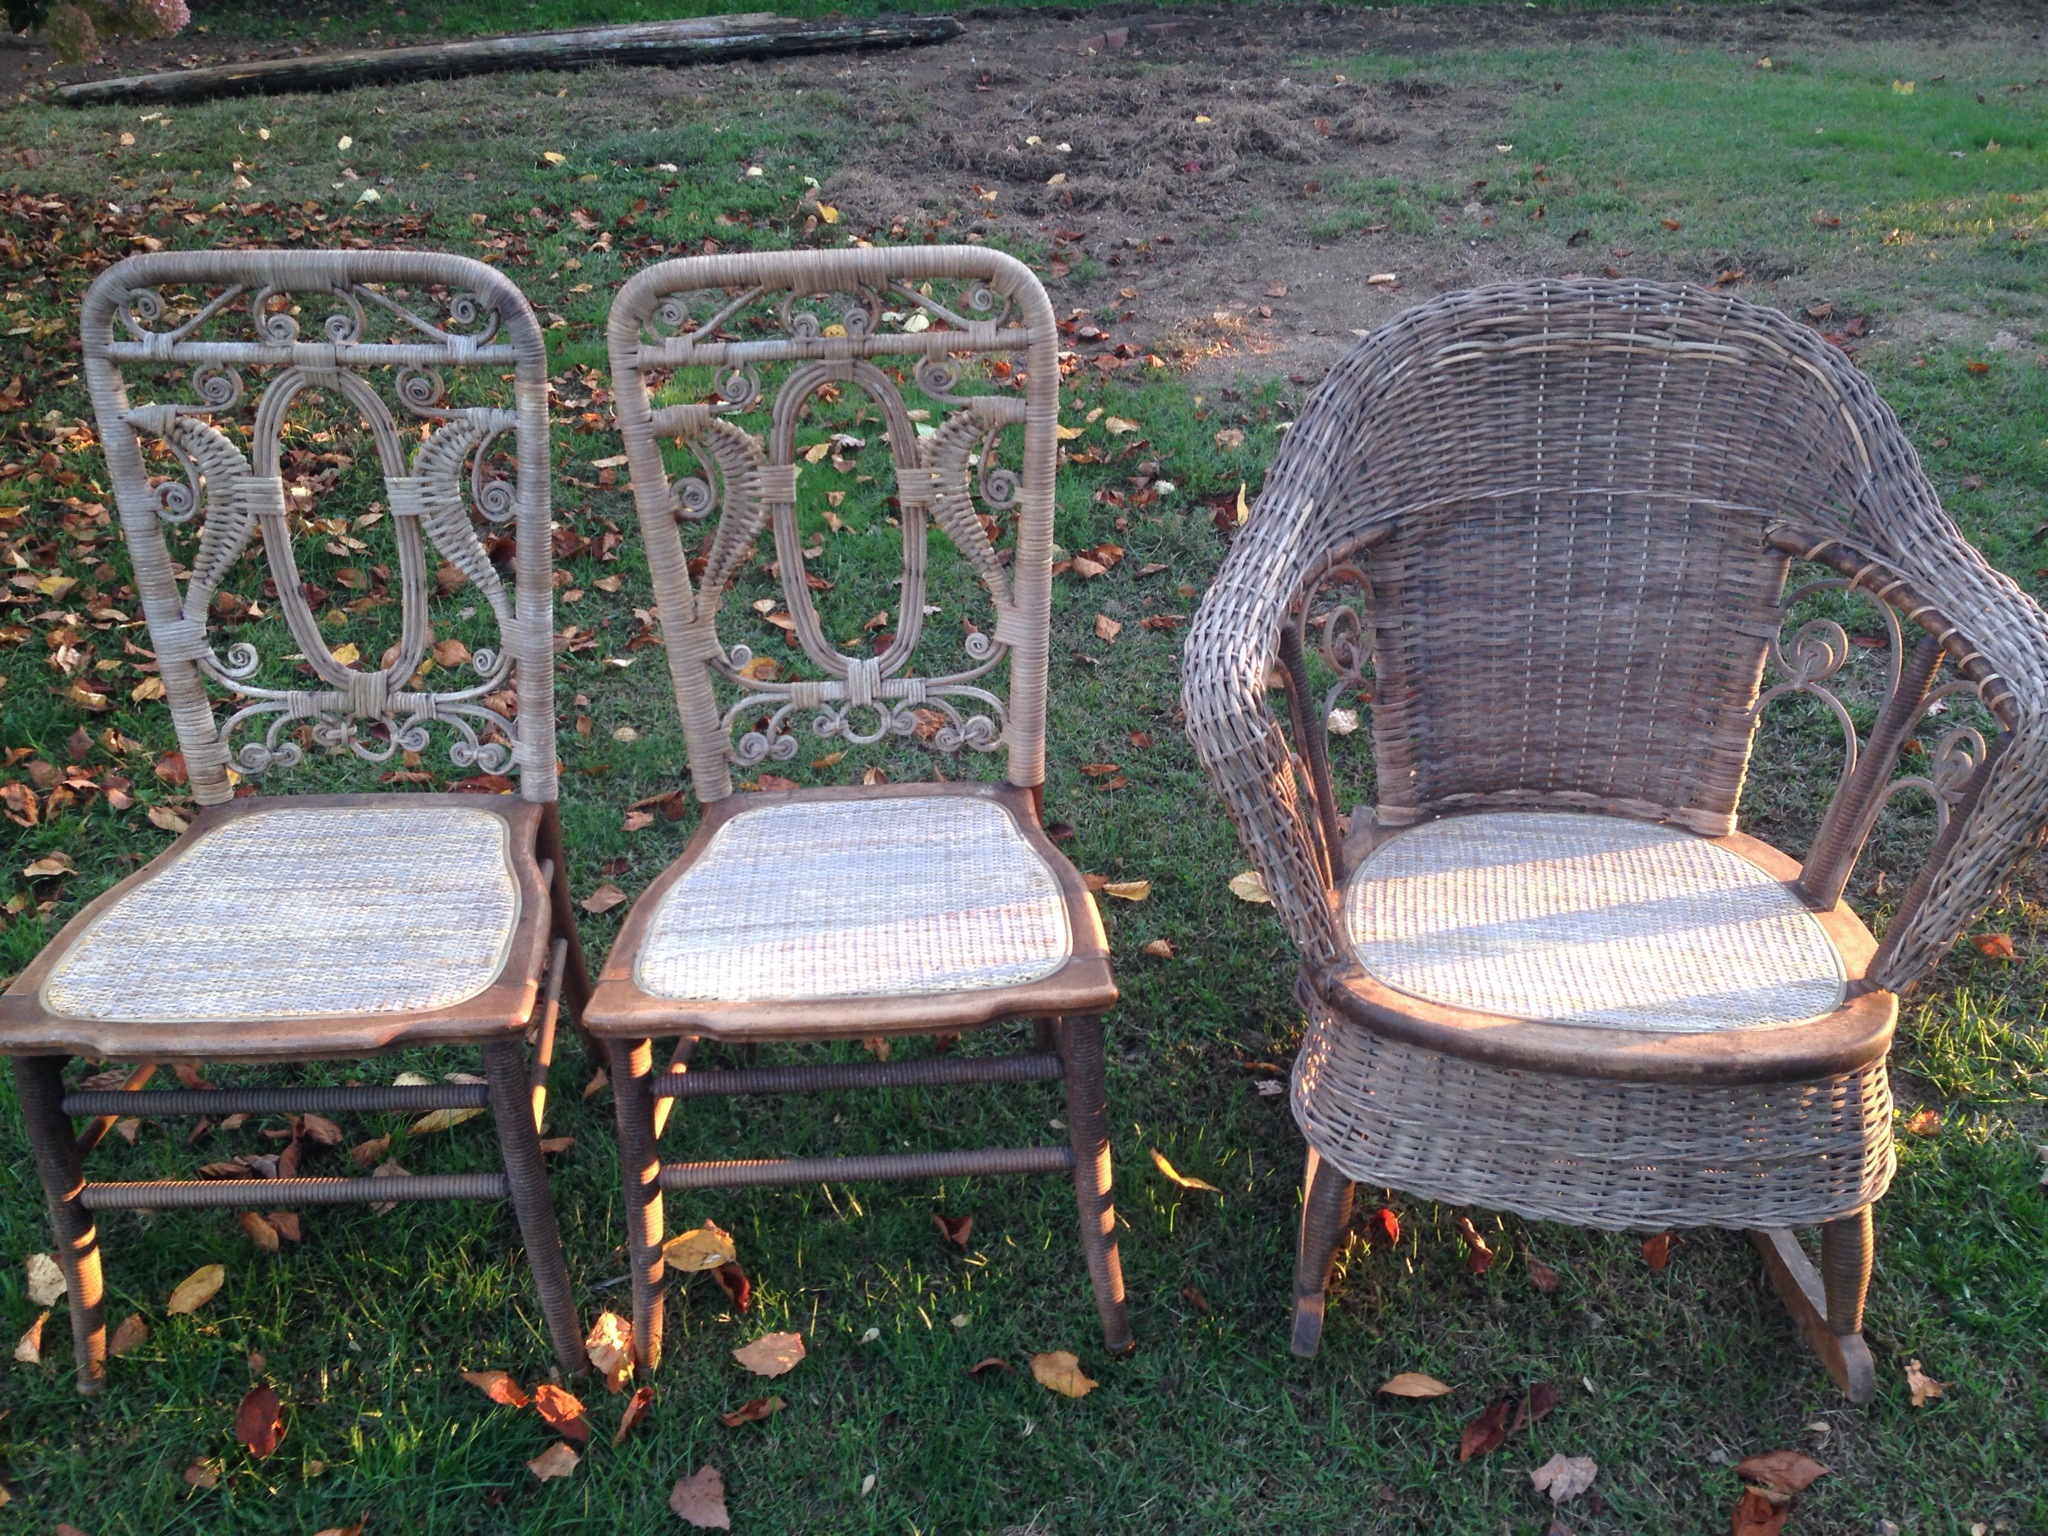 heywood wakefield wicker chairs revolving chair in indore hayloft studio pre early 1900 s set these so easily could have ended up the dumpster i m thankful my customer saw that there was